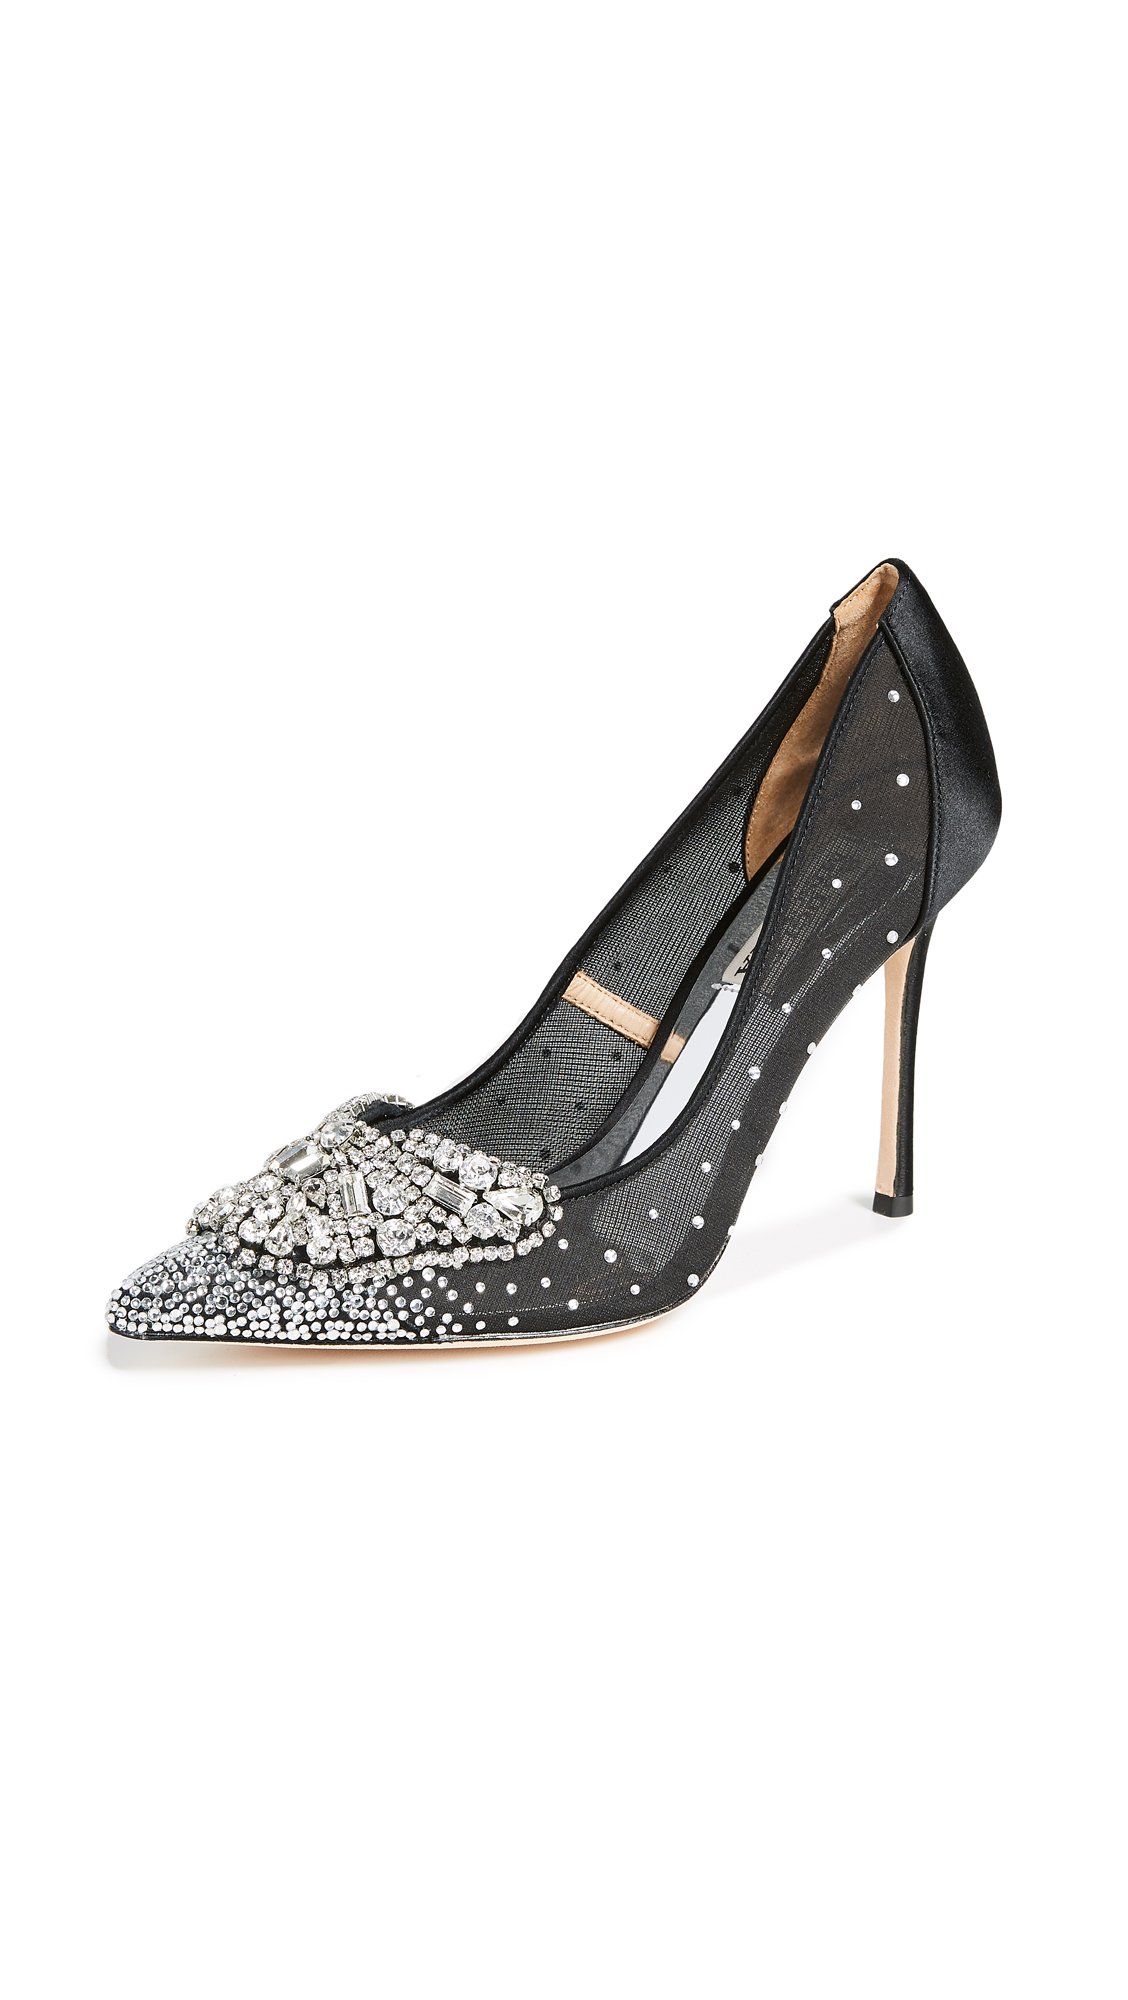 Badgley Mischka Quintana Pointed Toe Pumps - Black